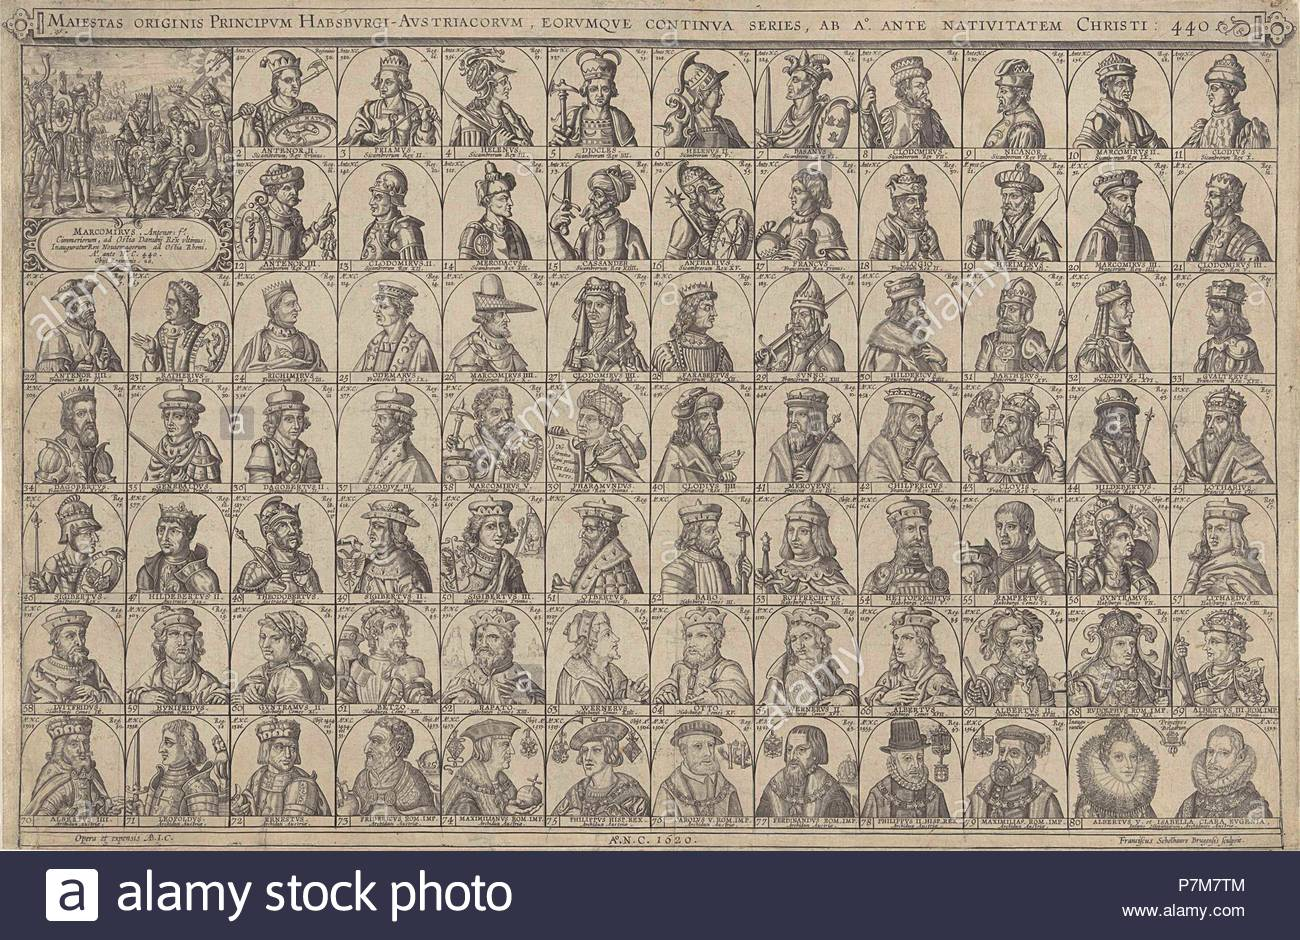 Portraits of princes of the House of Habsburg, print maker: Franciscus Schelhauer, 1620. - Stock Image